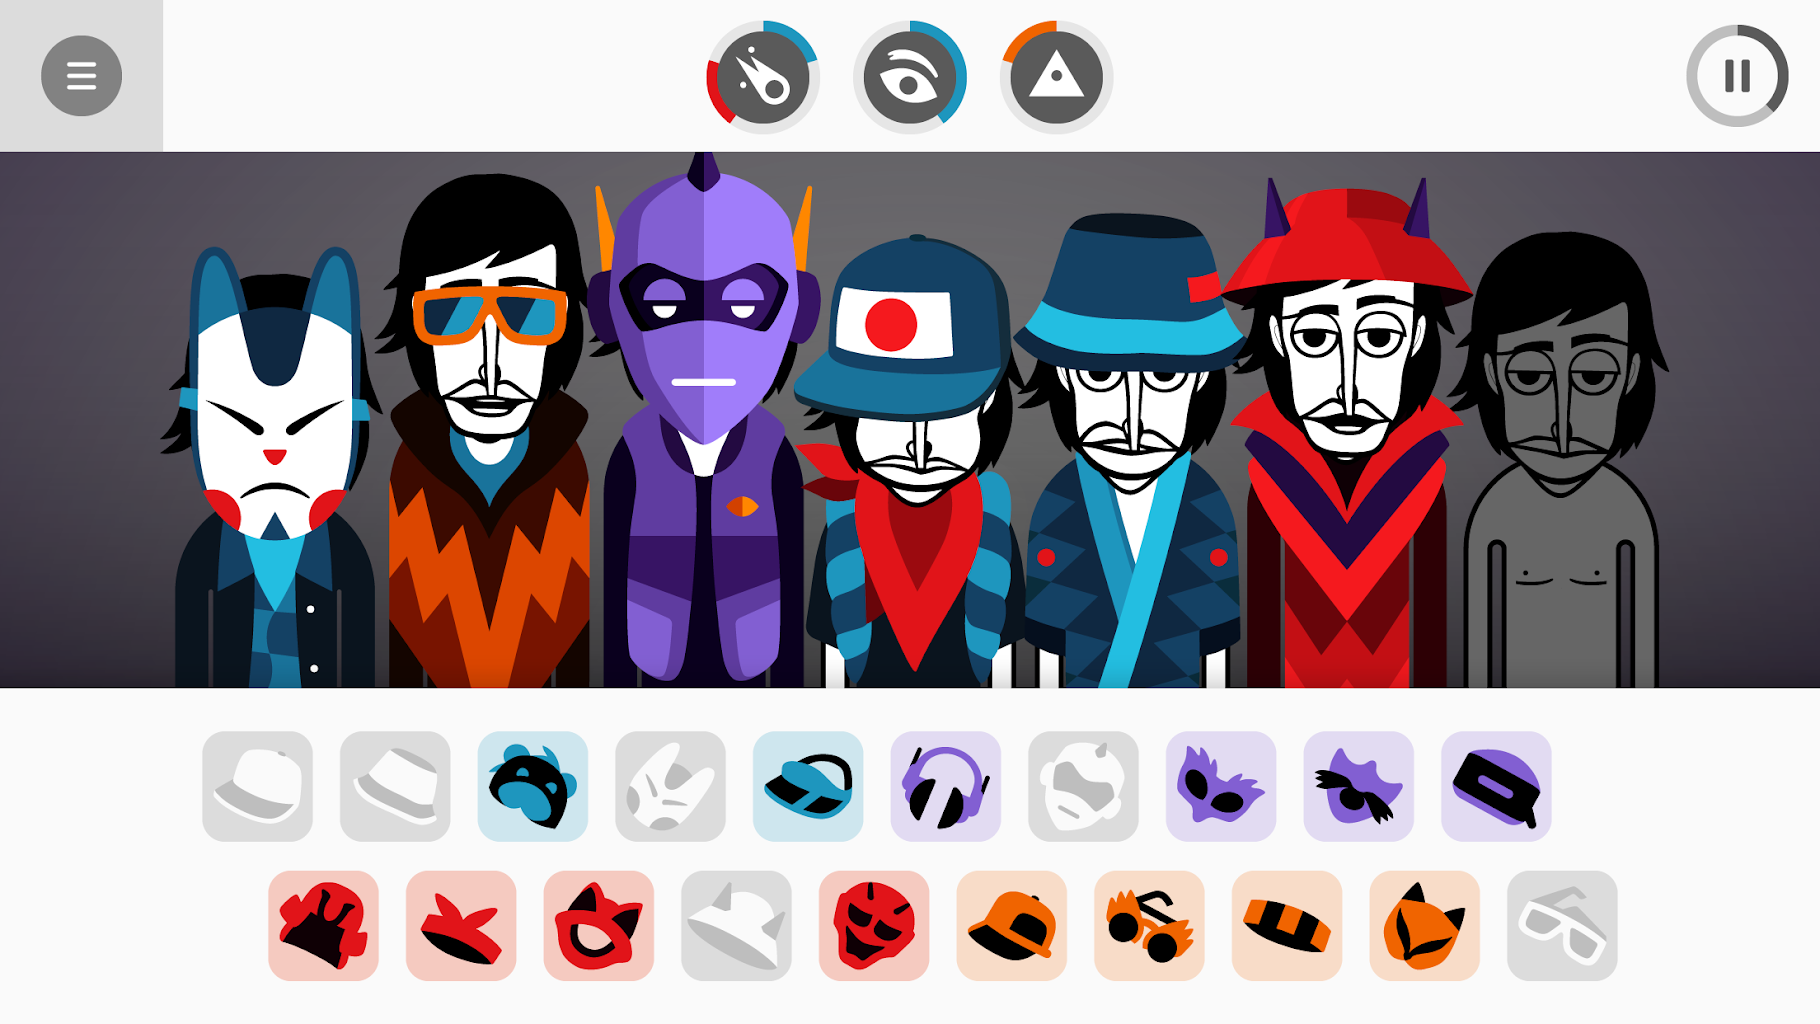 Incredibox Apk Download Free Latest For Android - APKShelf